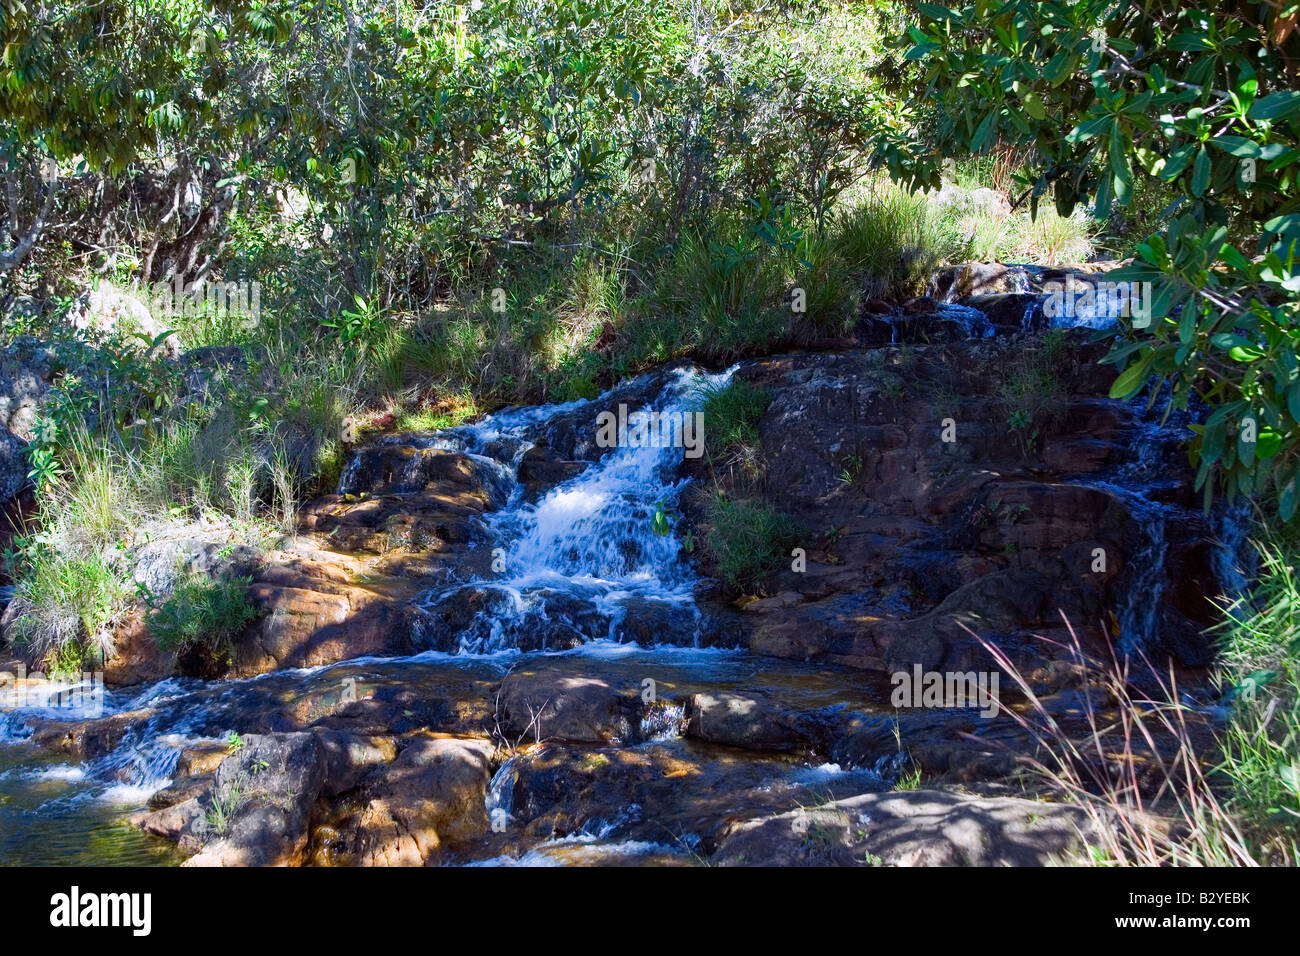 Waterfall, Cristal River, Rio Cristal, Chapada dos Veadeiros, Veadeiros Tableland, Goias, Brazil Stock Photo